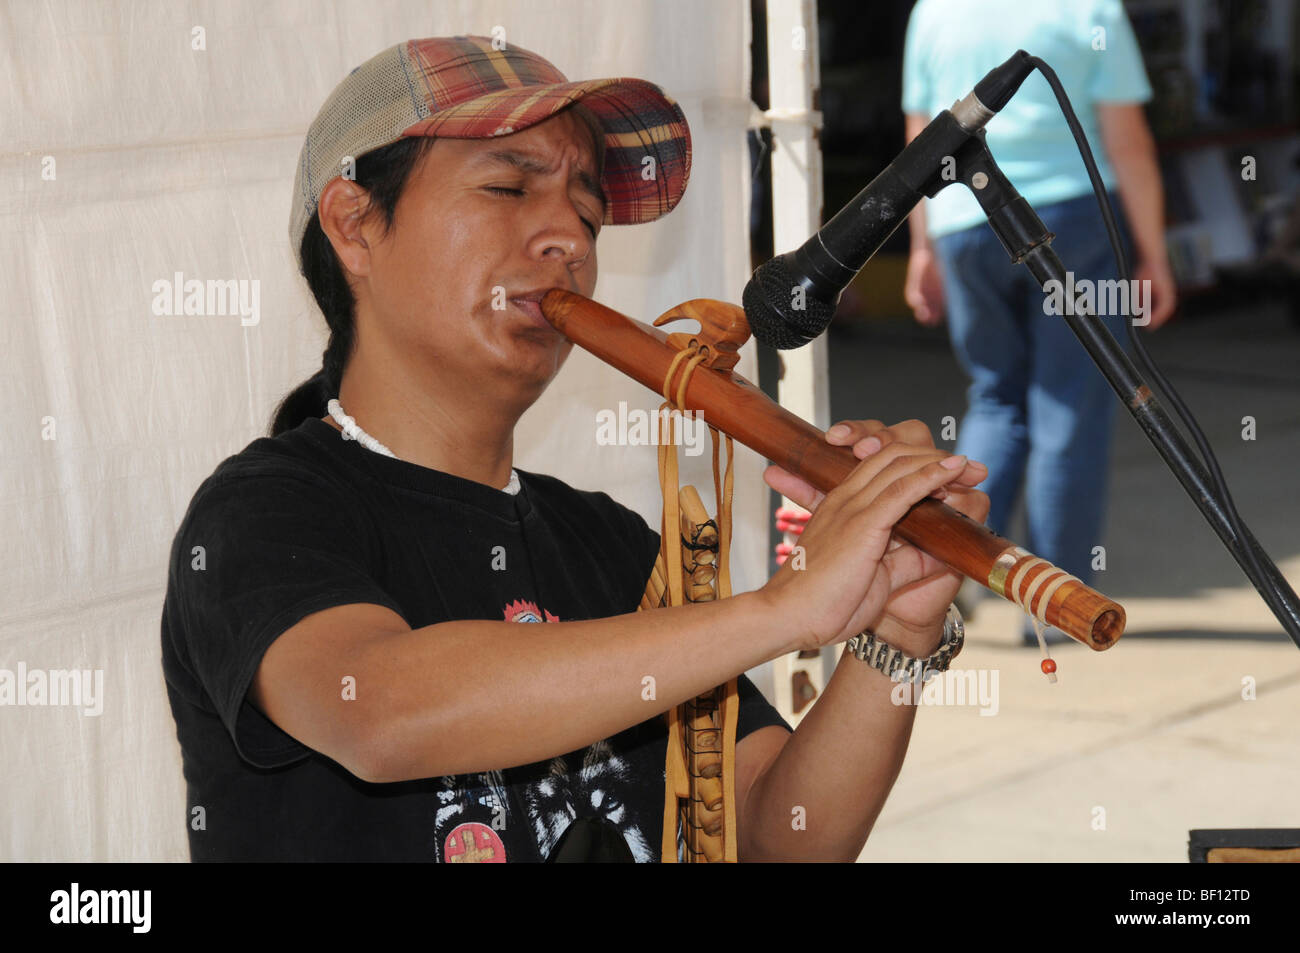 man playing a flute - Stock Image